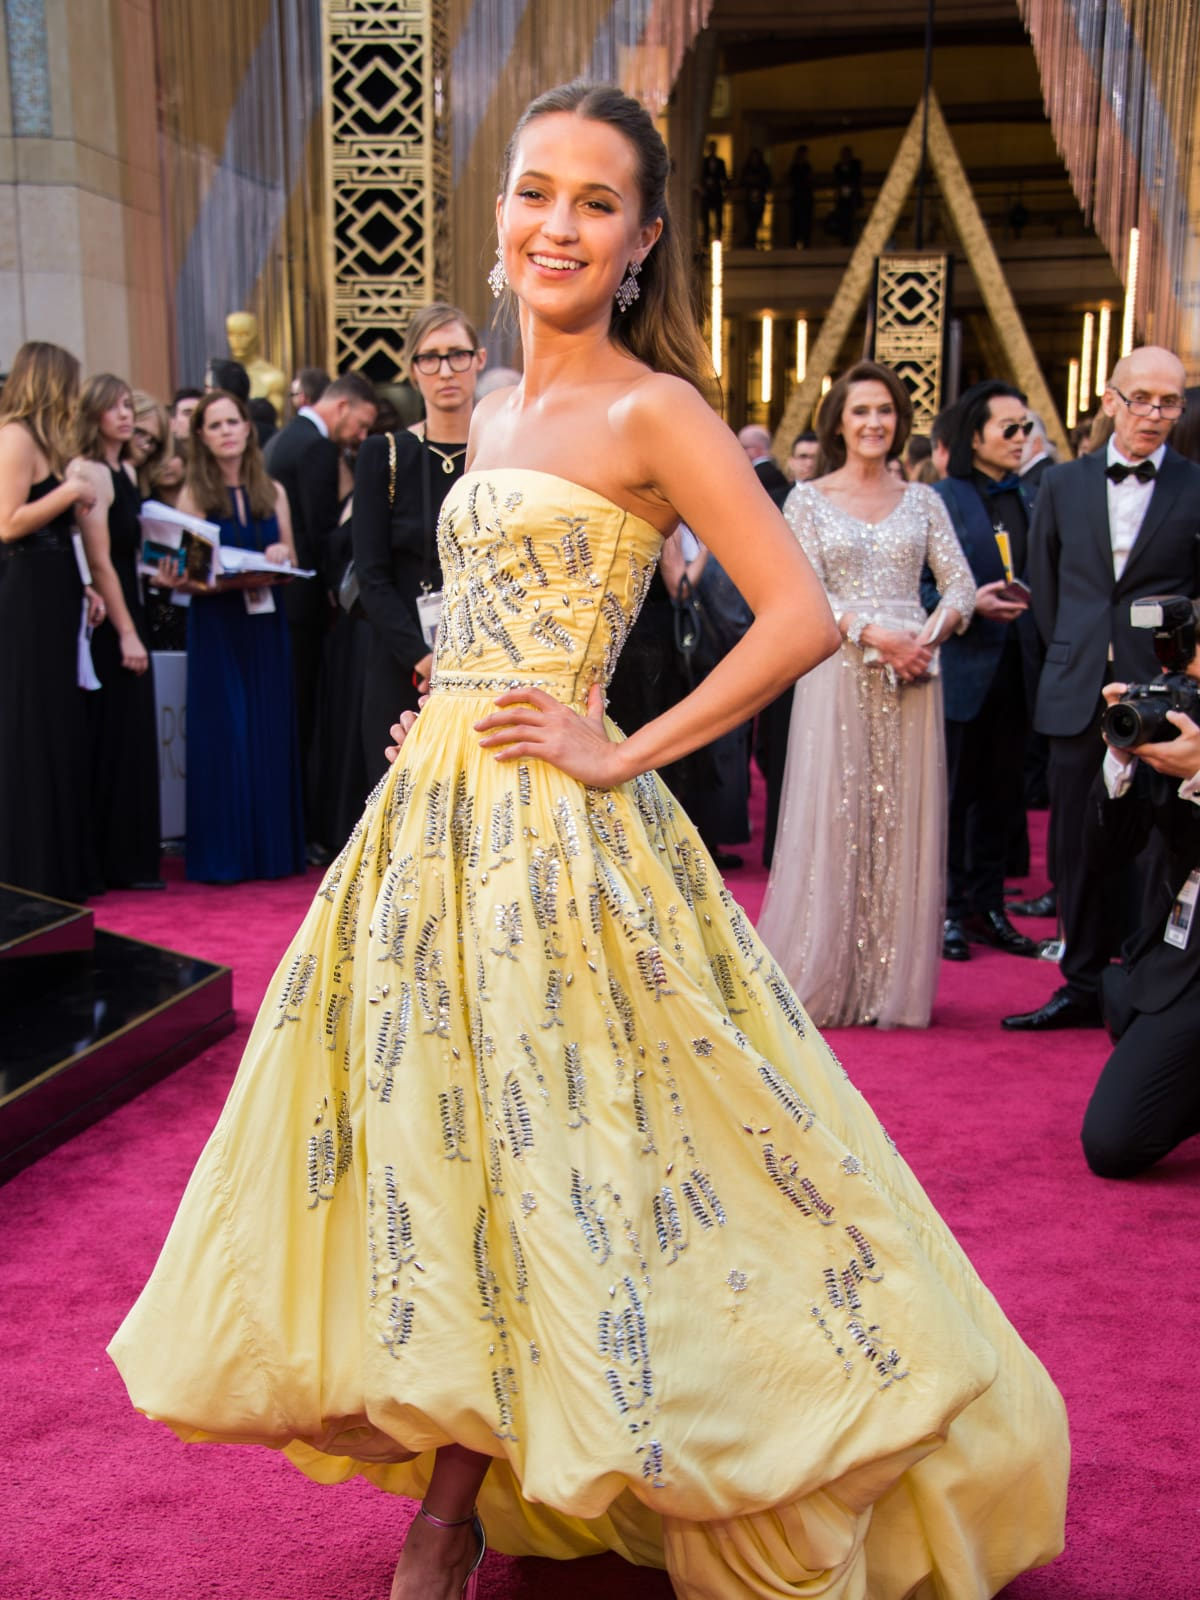 Alicia Vikander at Oscars in Louis Vuitton gown